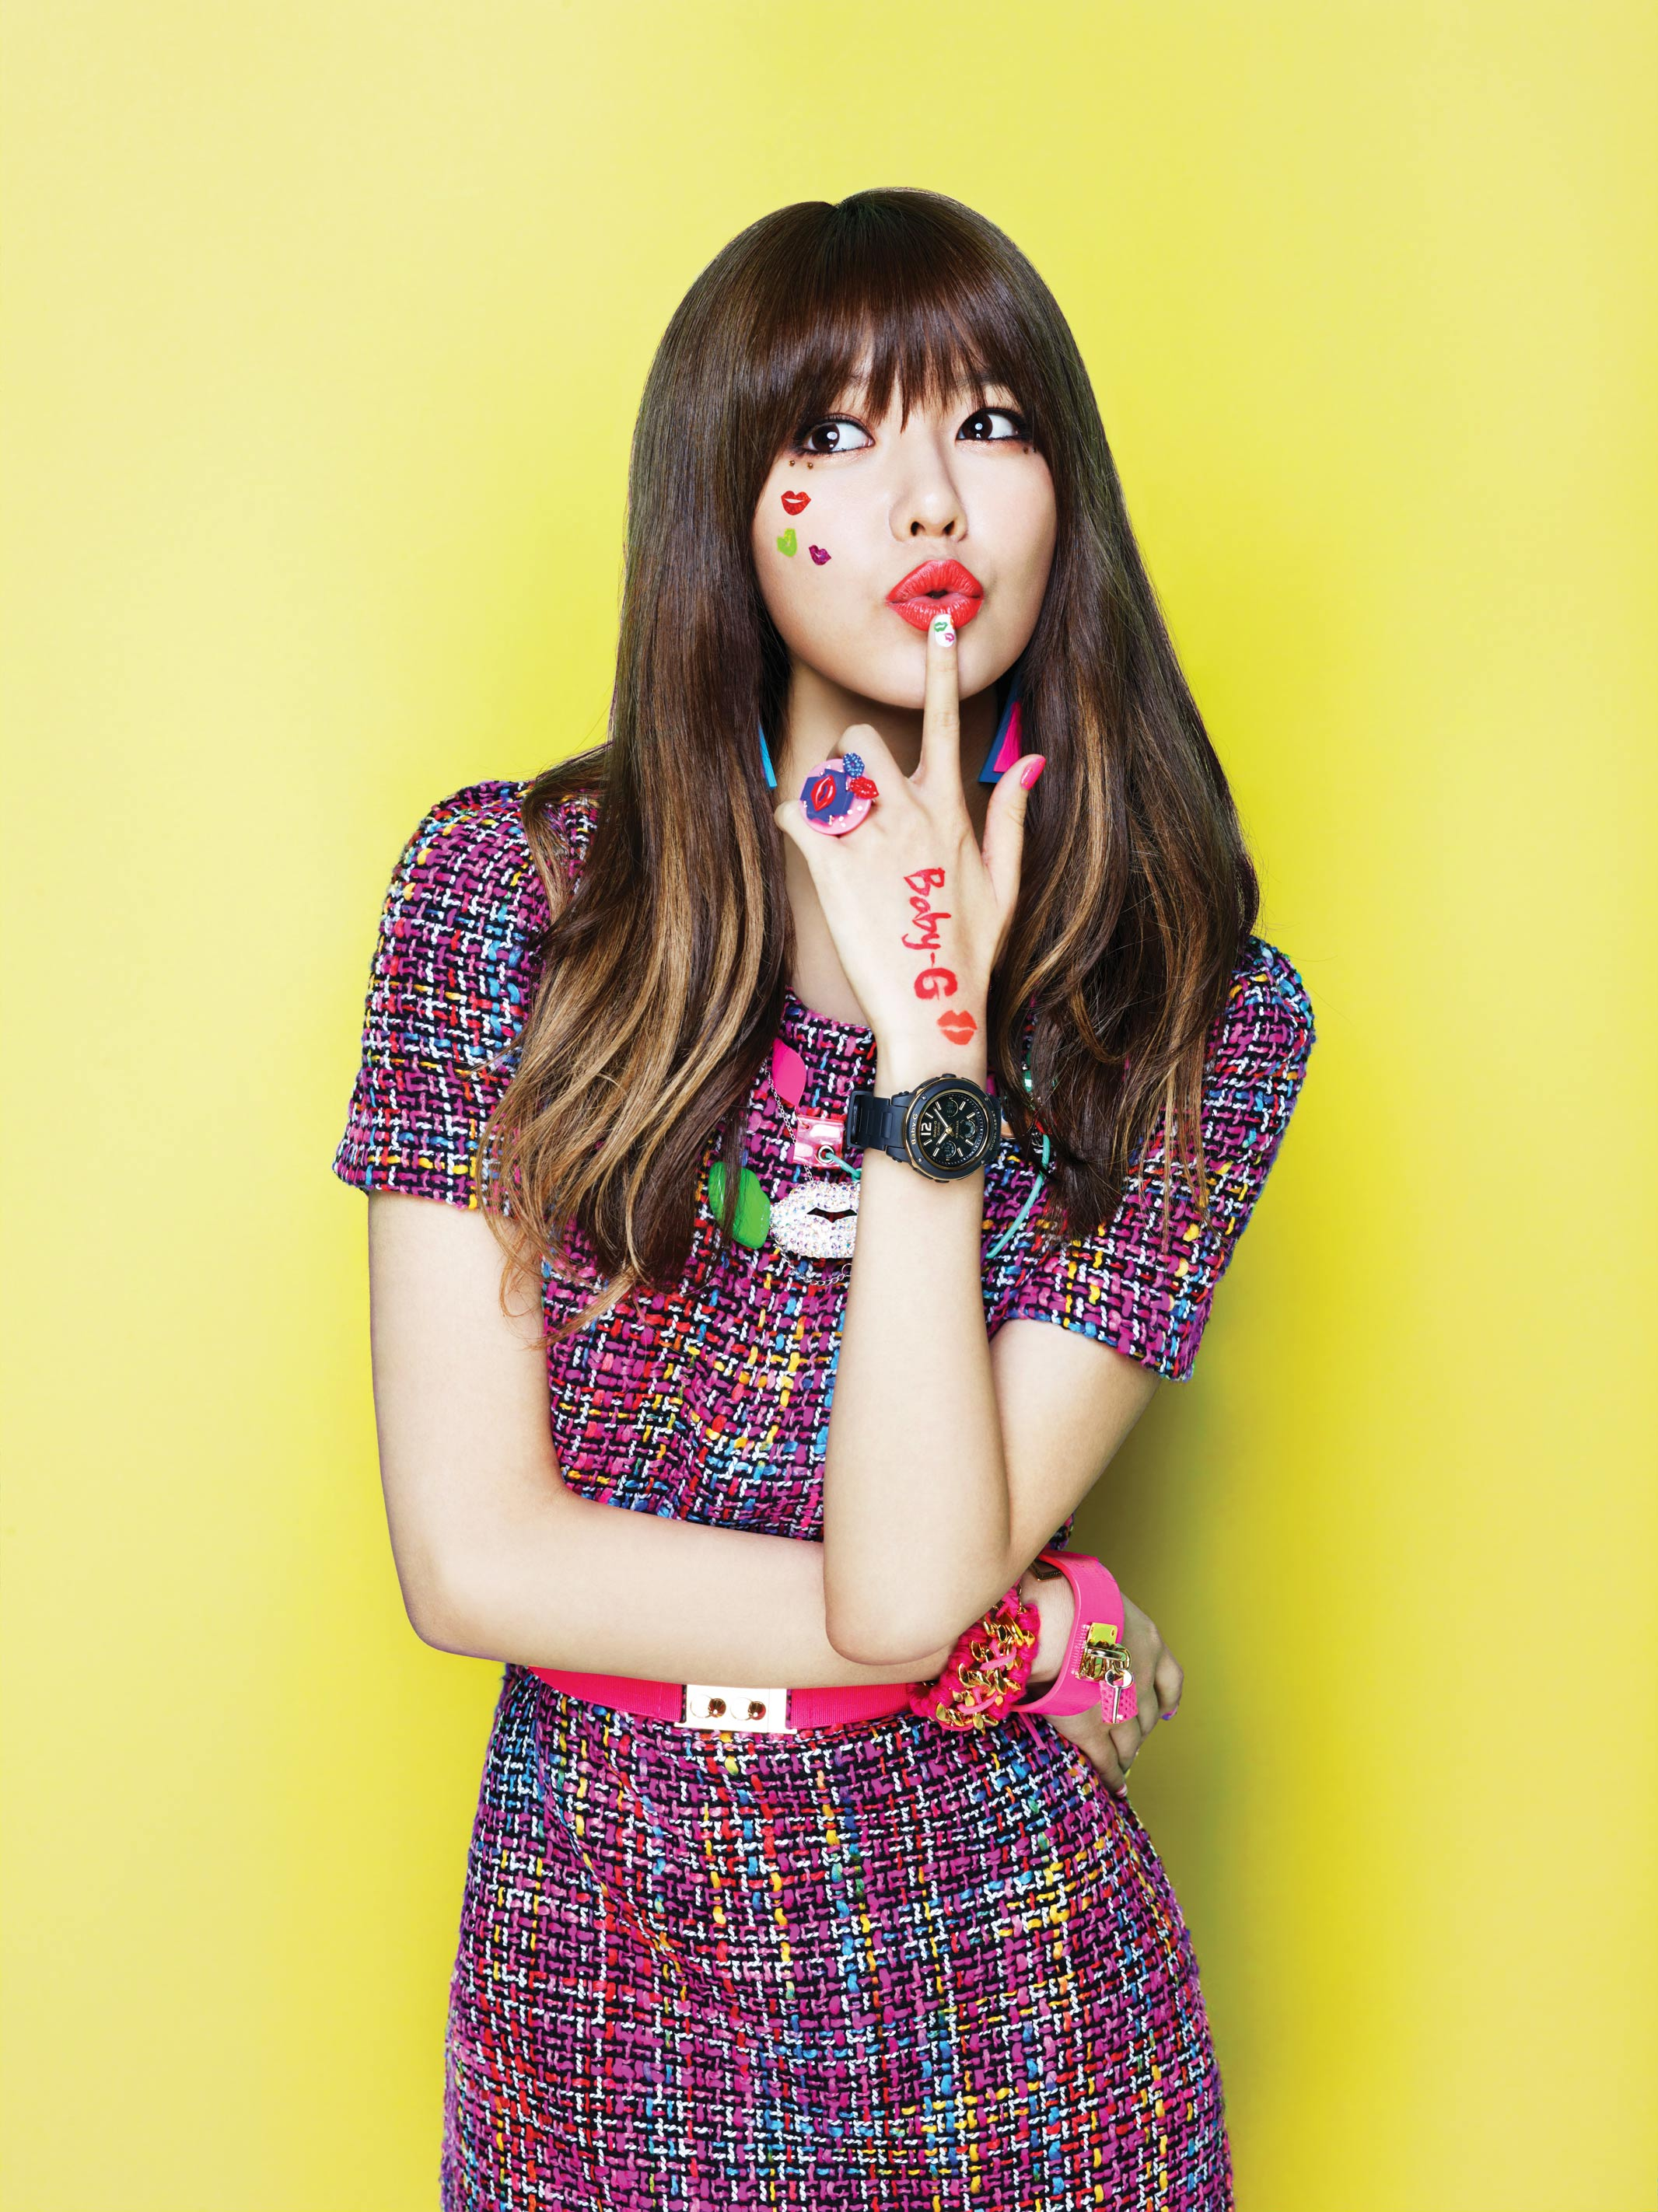 SNSD Sooyoung Casio Baby-G Kiss Me 2013